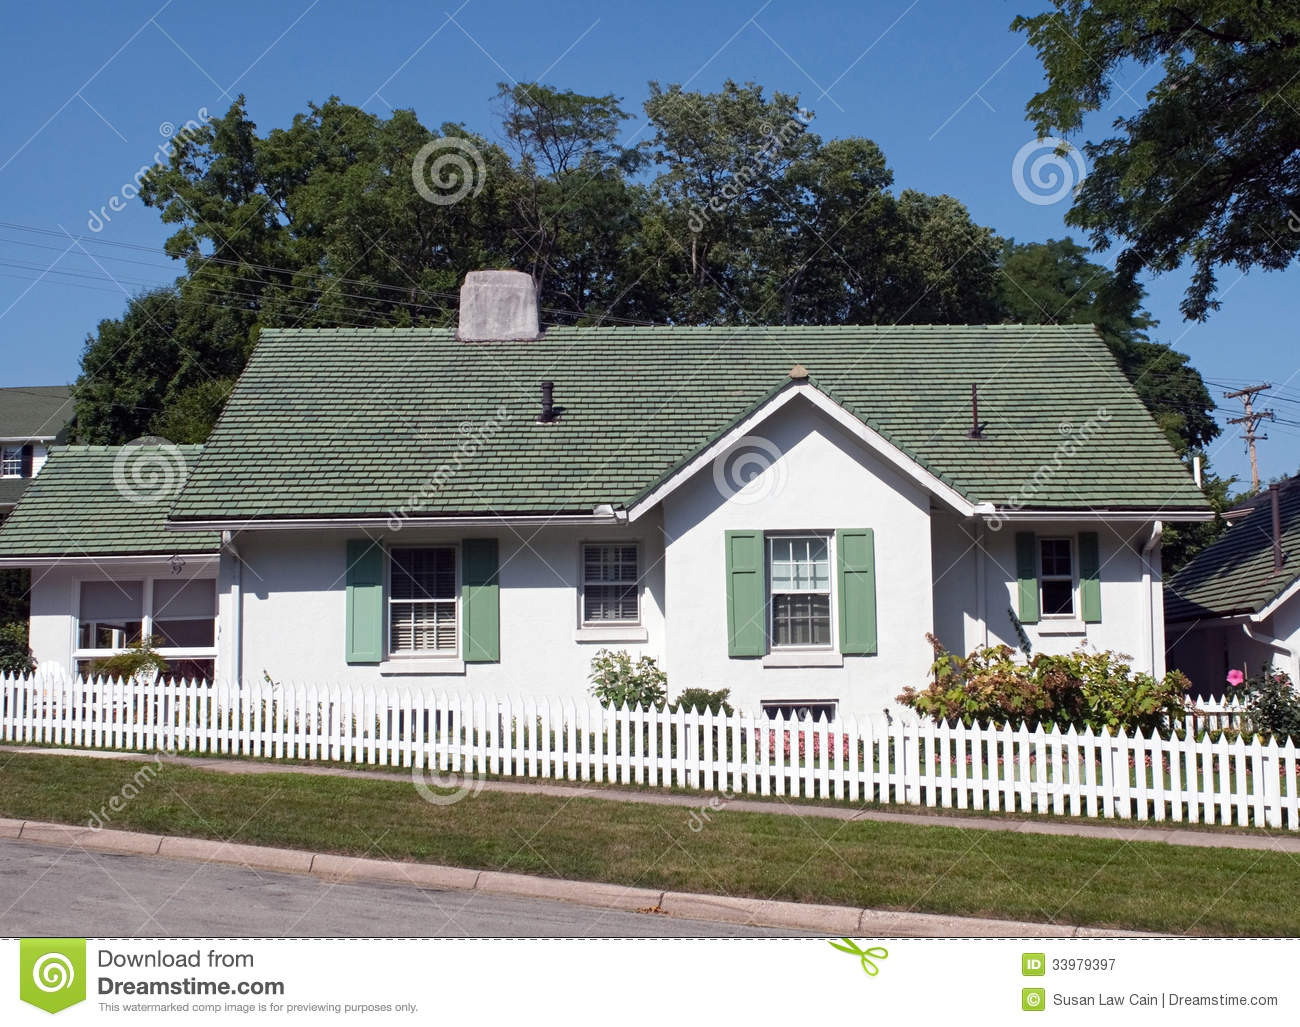 Green & White Cottage With White Picket Fence Royalty Free